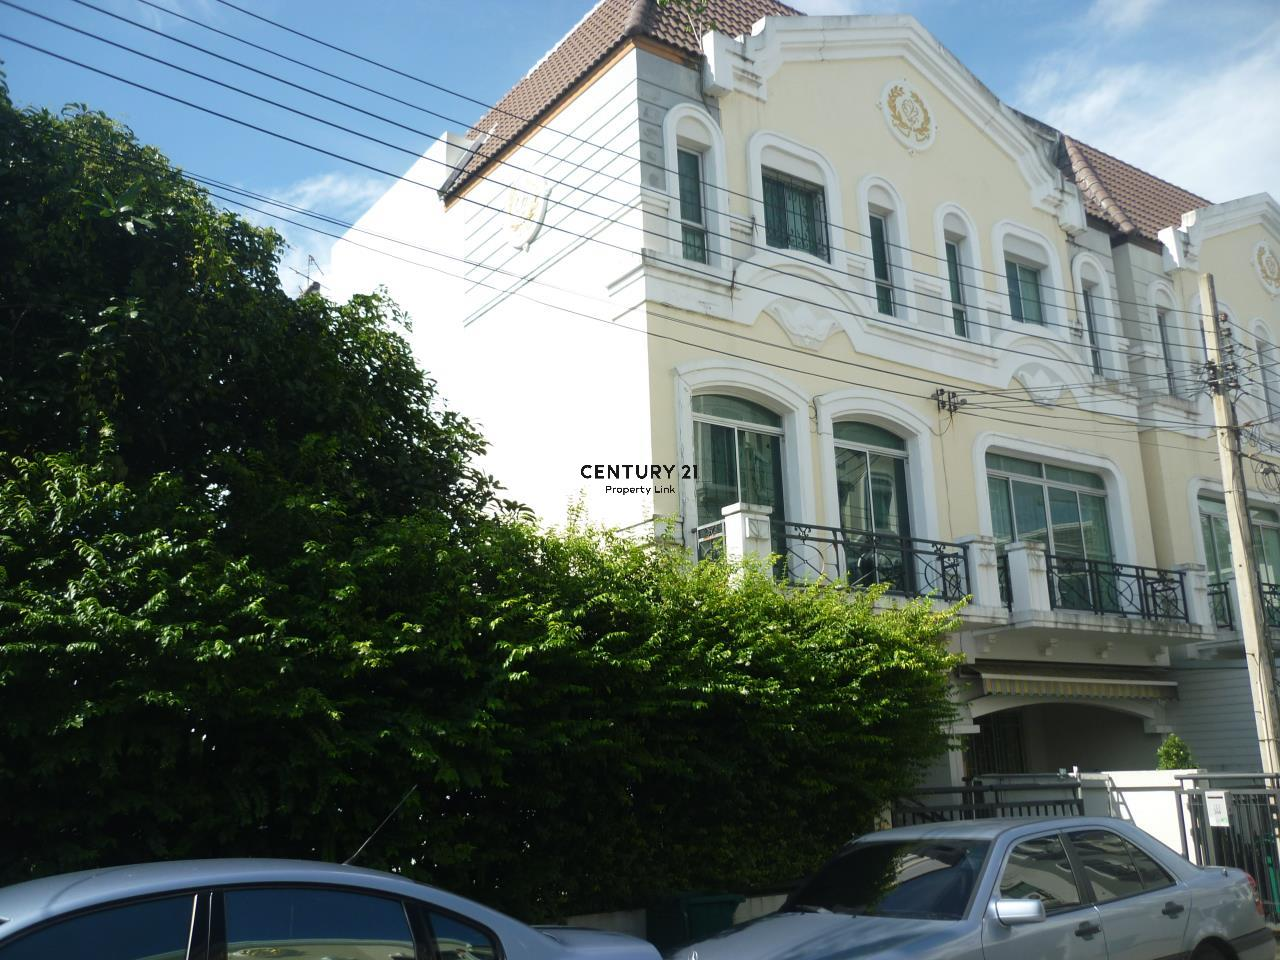 Century21 Property Link Agency's 38-TH-61061 Townhome 3 Storeys @Prasert-Manukitch near Nawamin city Avenue The Walk Kaset University 2